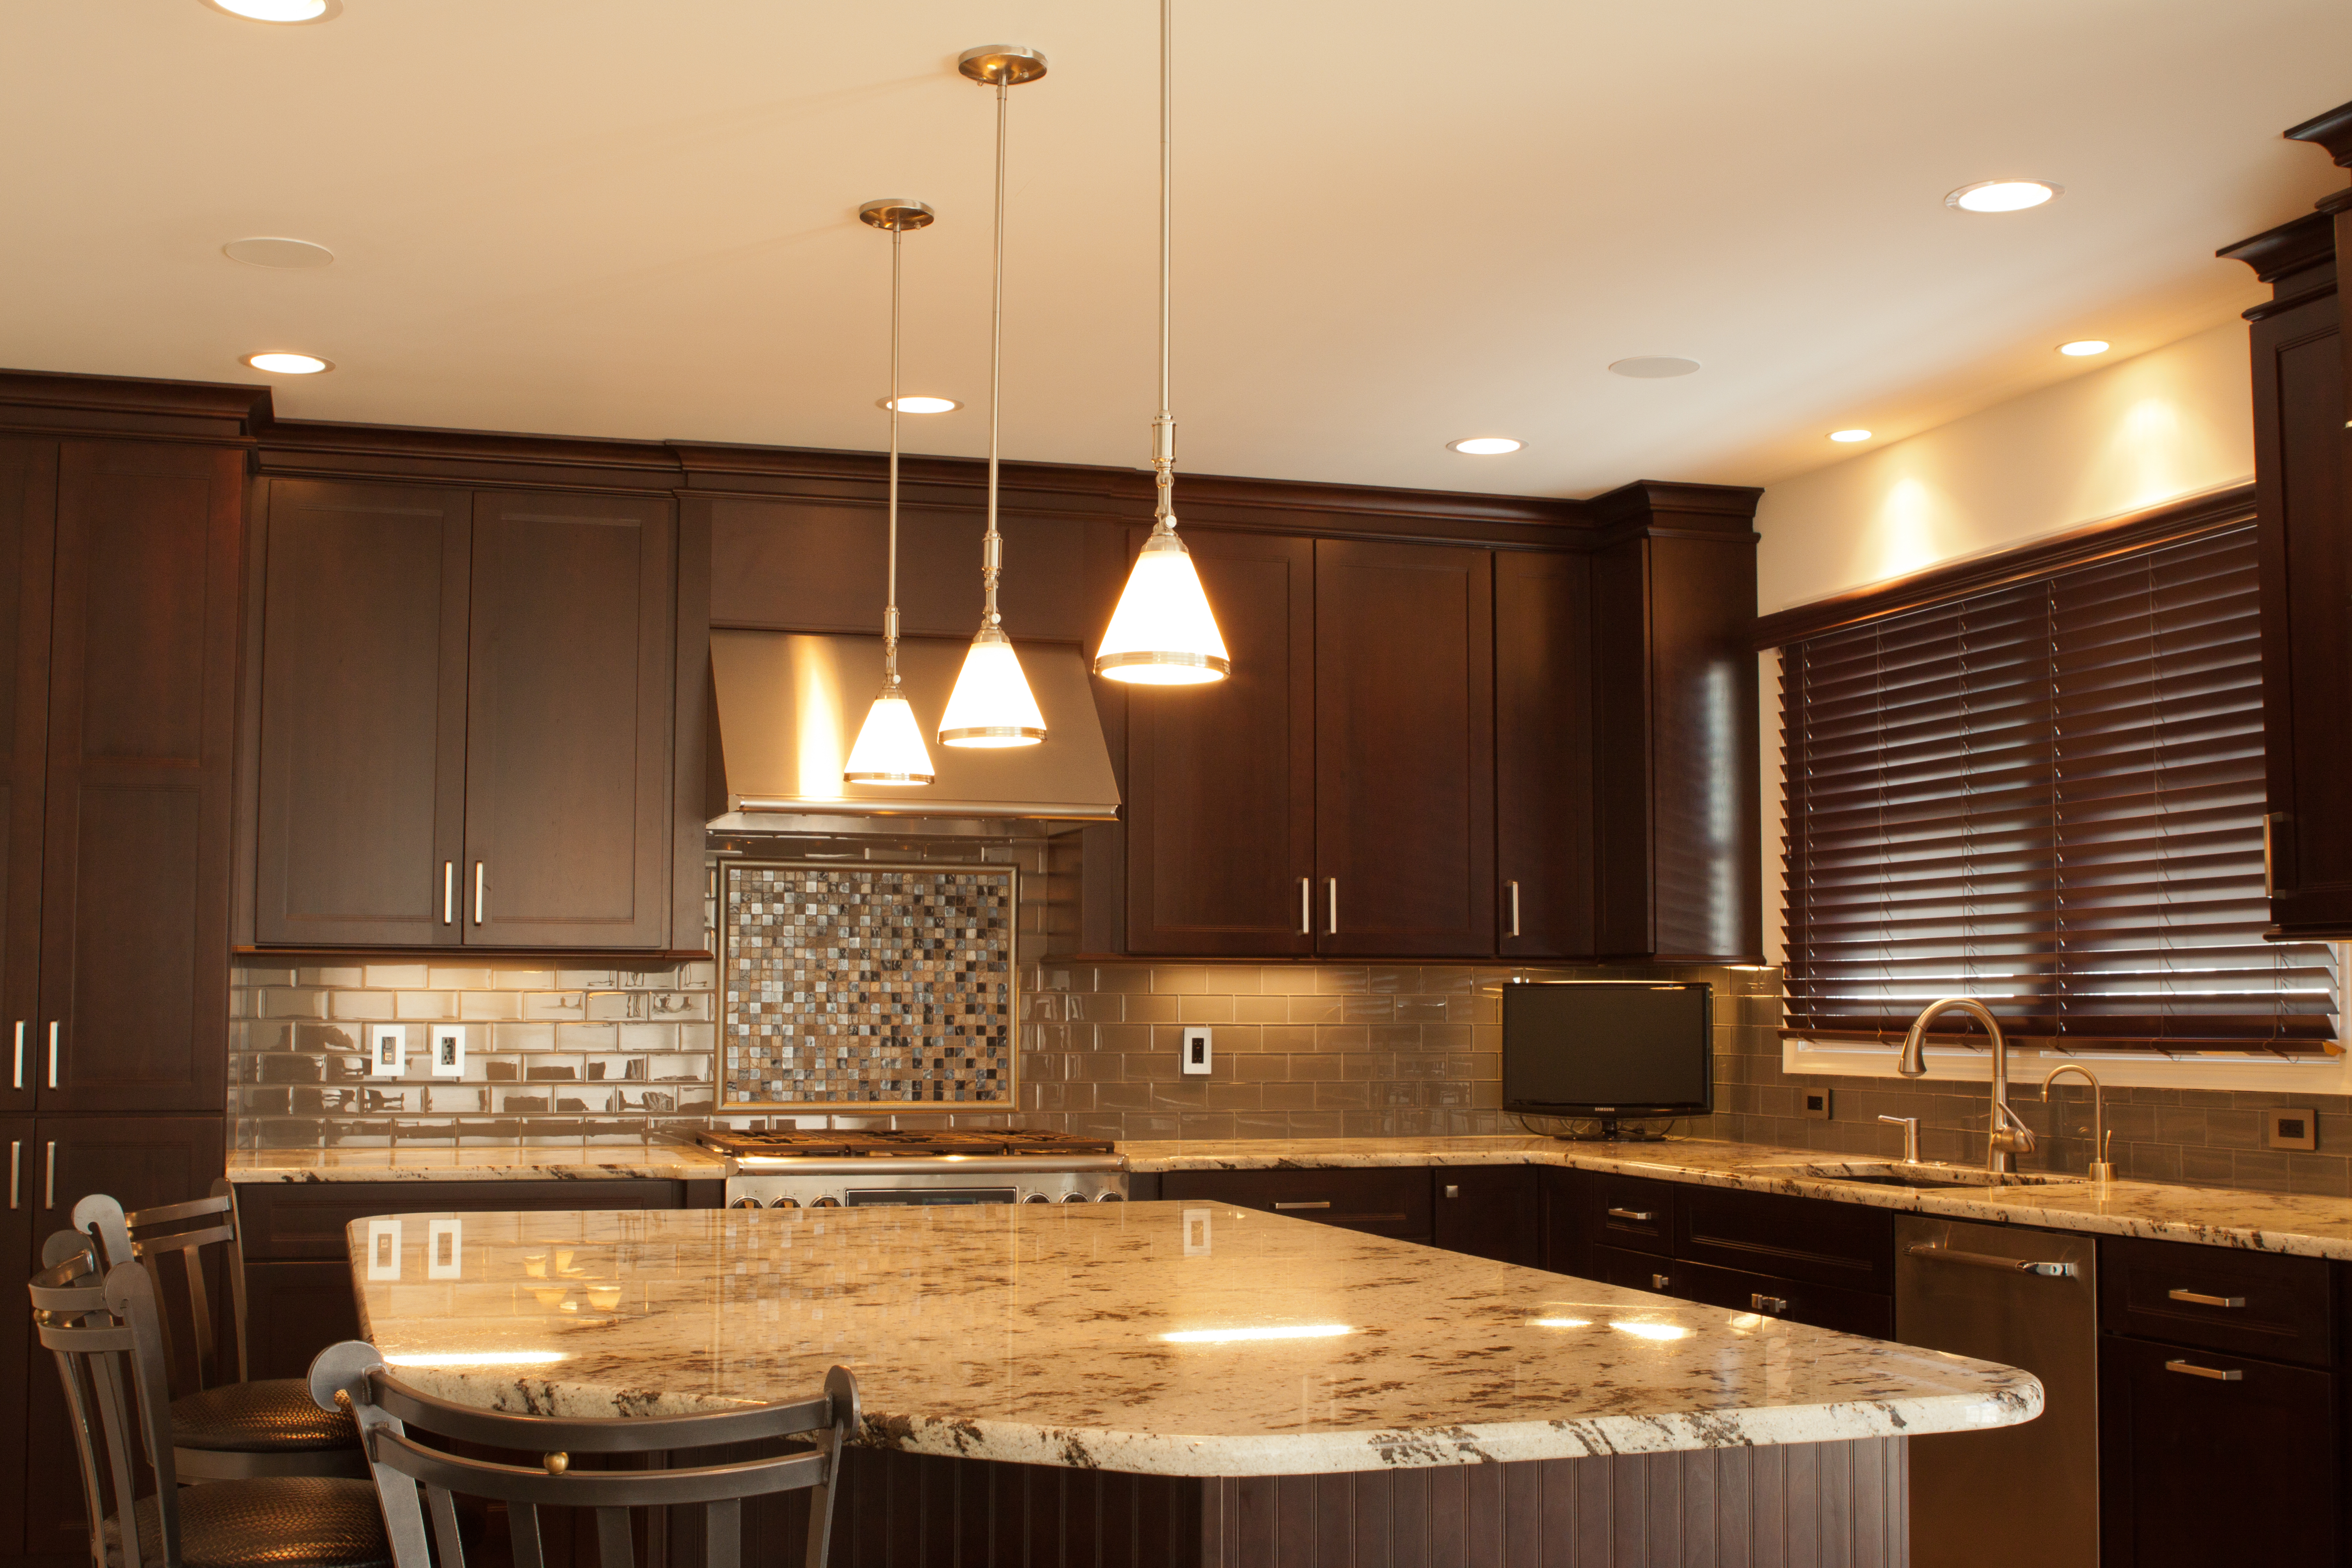 Kitchen Renovations By Ross Costantino & Sons Construction INC